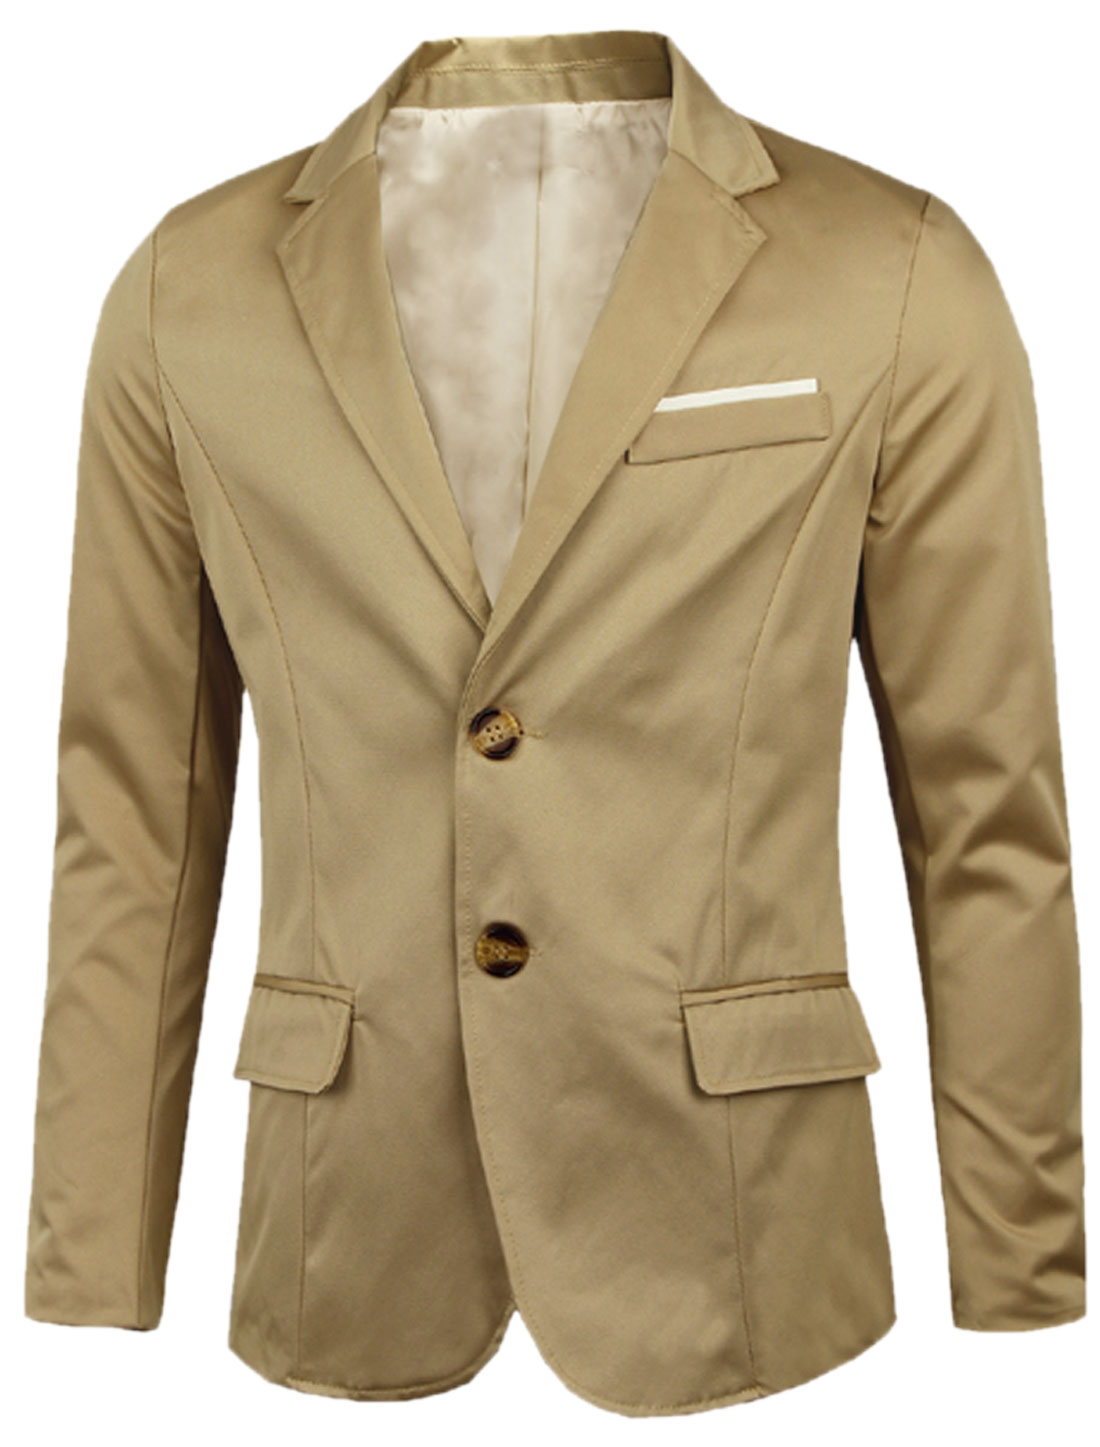 Notched Lapel Two Flap Pockets Front NEW Blazer for Men Khaki M